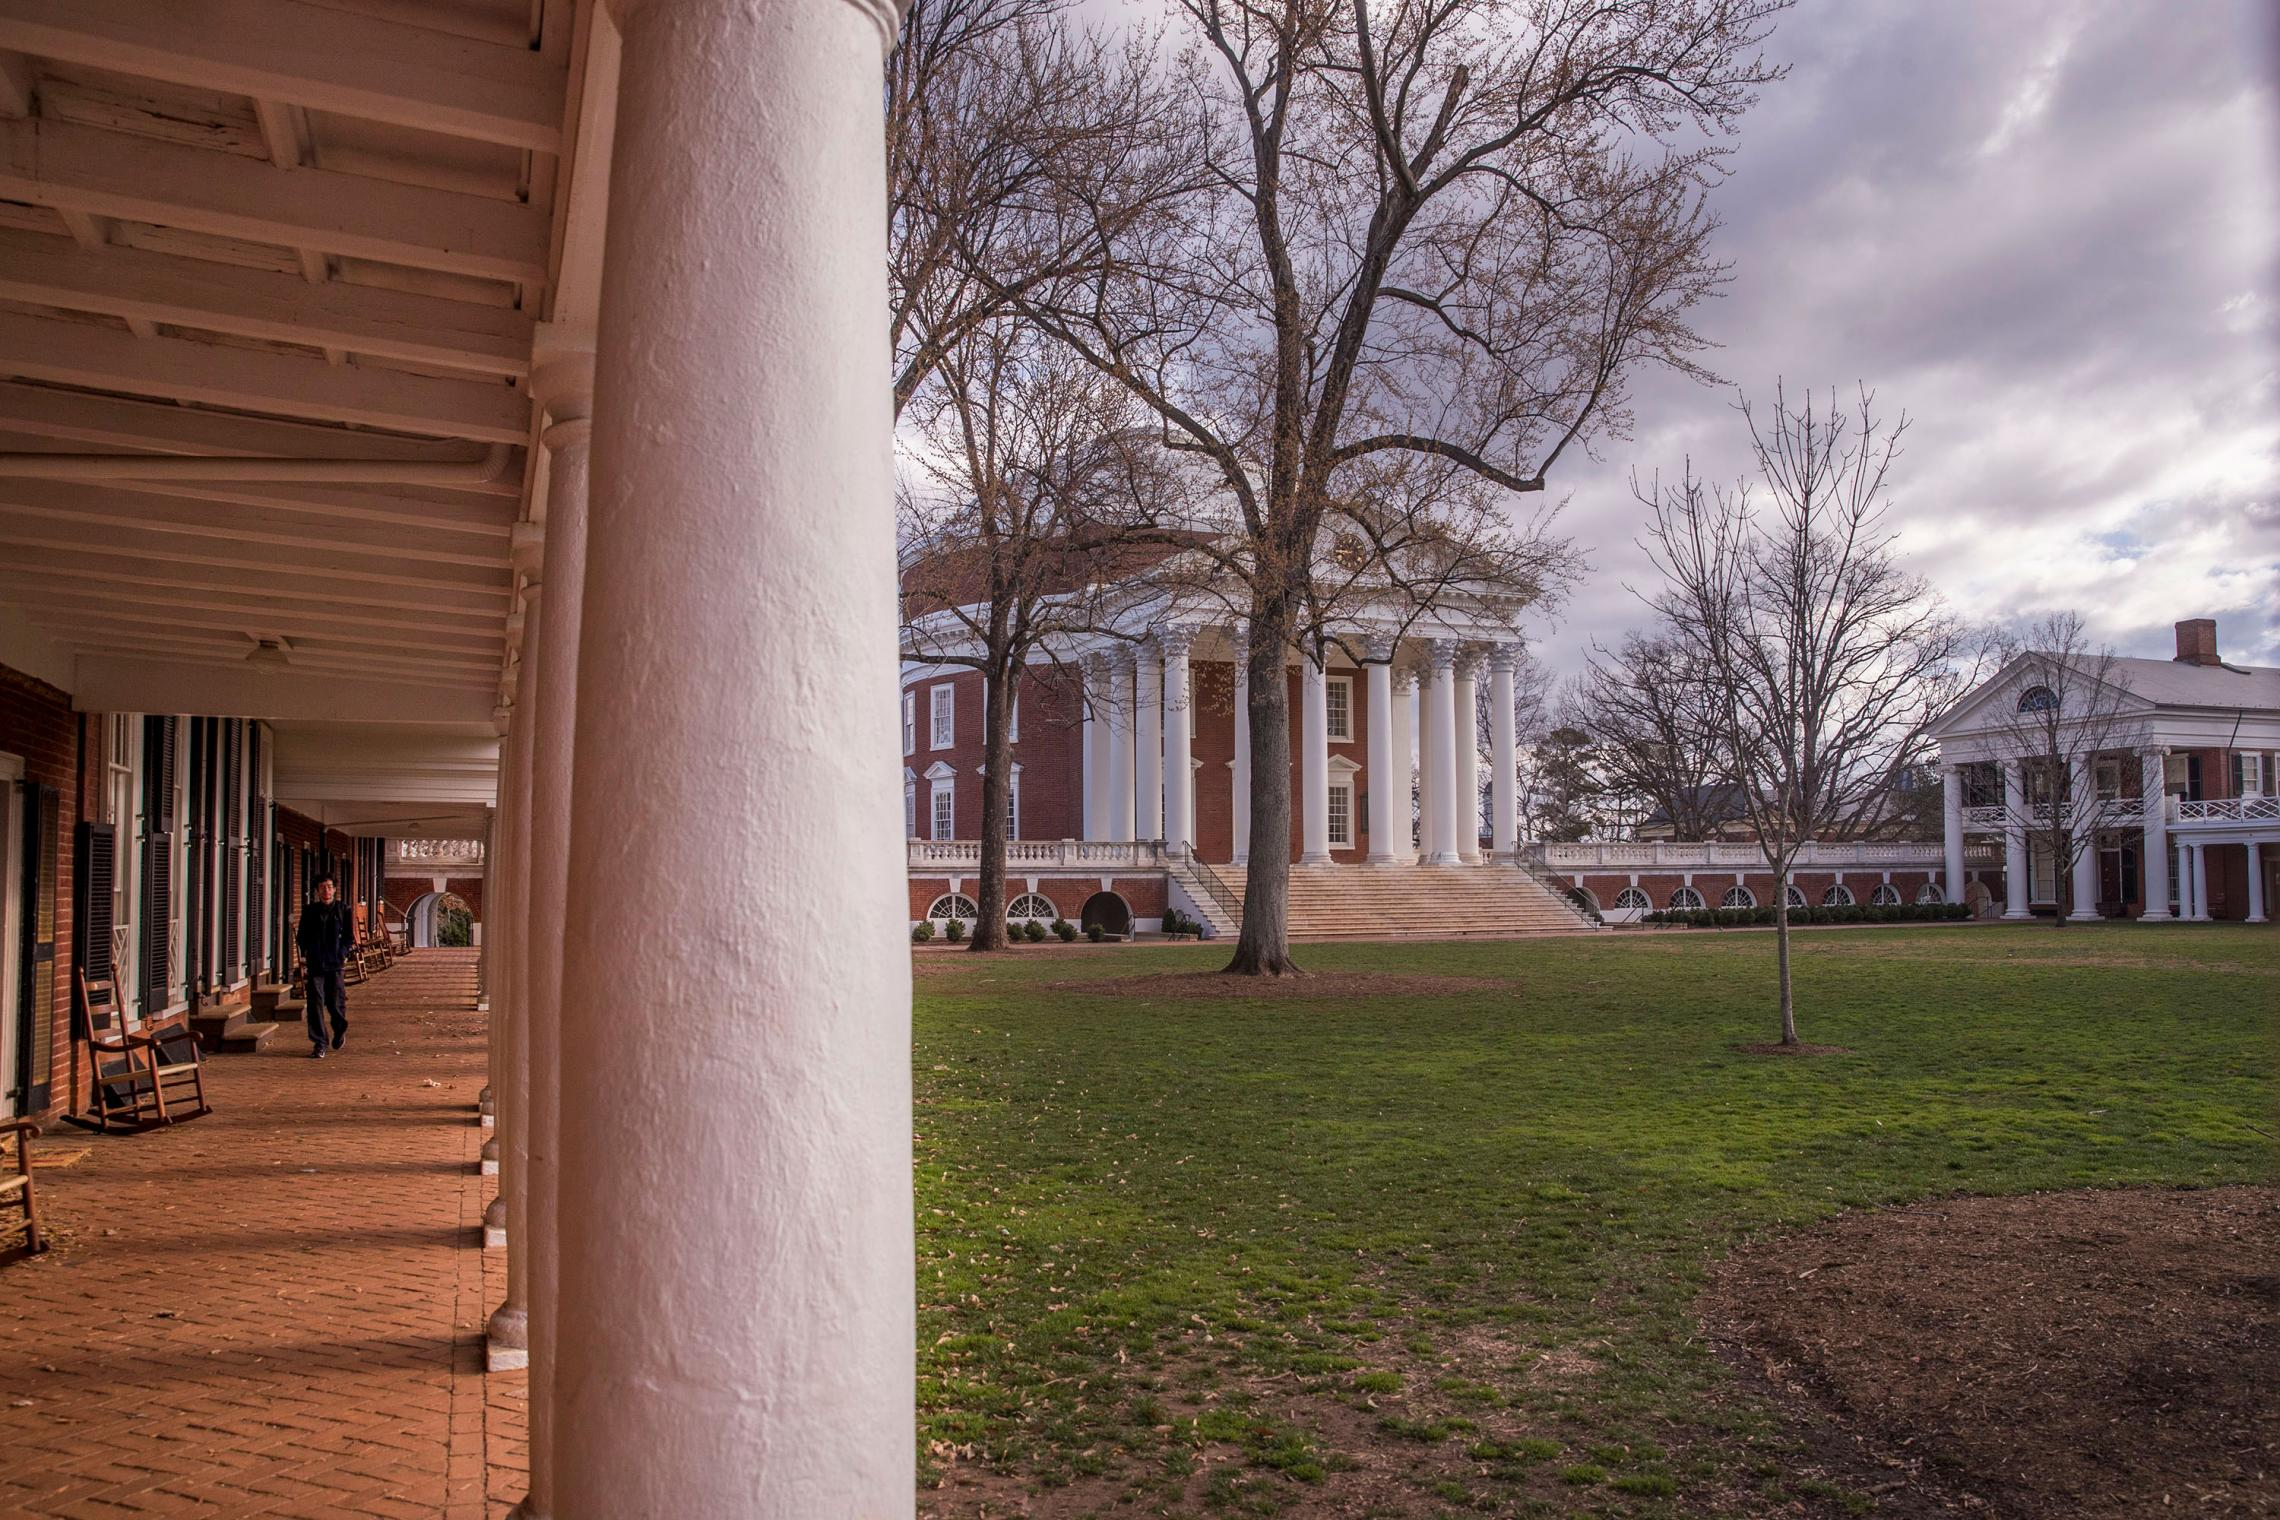 """Updates and markers on Grounds will commemorate events that spurred change at UVA, such as the 1969 anti-war, pro-civil rights """"Coat and Tie Rebellion"""" at the Rotunda. (Photo by Sanjay Suchak, University Communications)"""